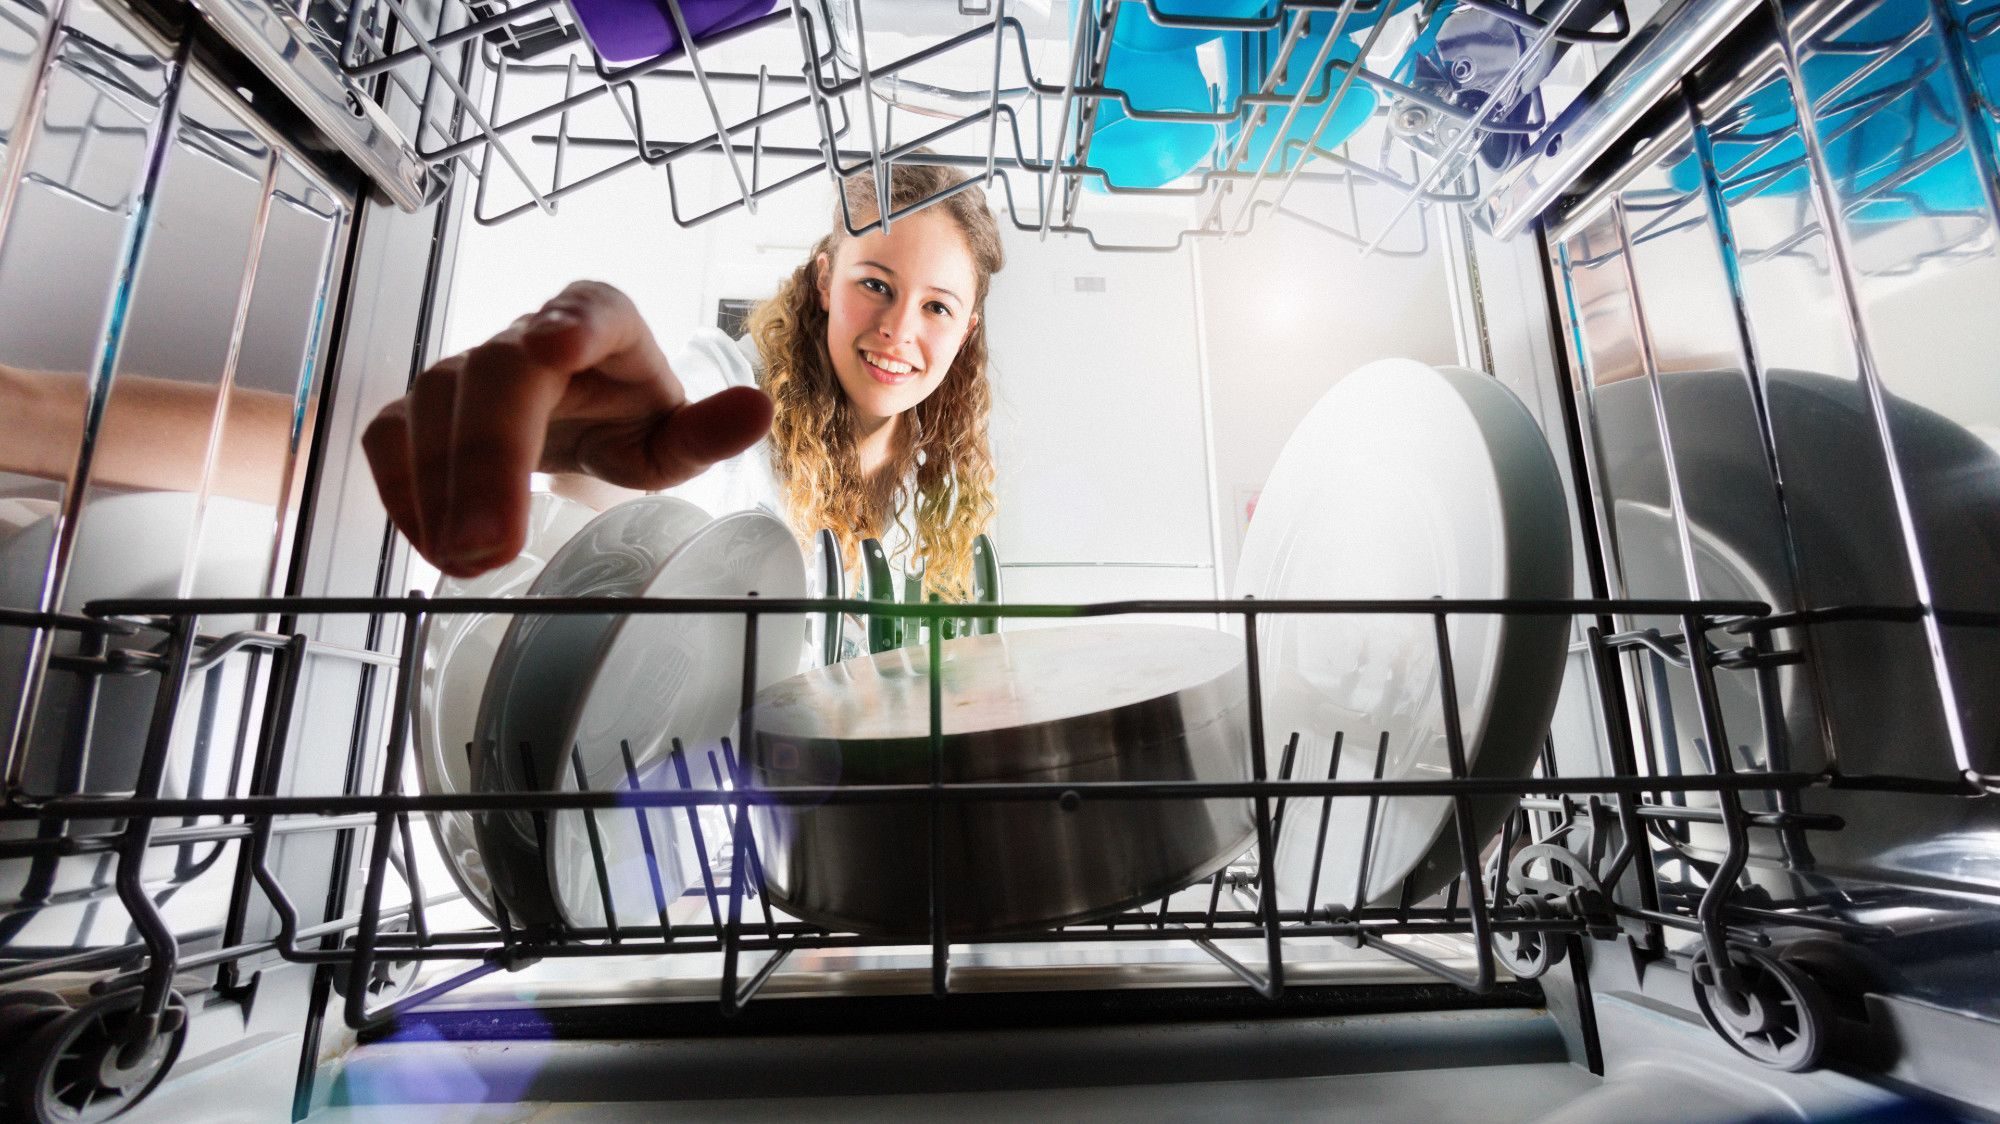 6 Things You Didn't Know You Could Put in the Dishwasher